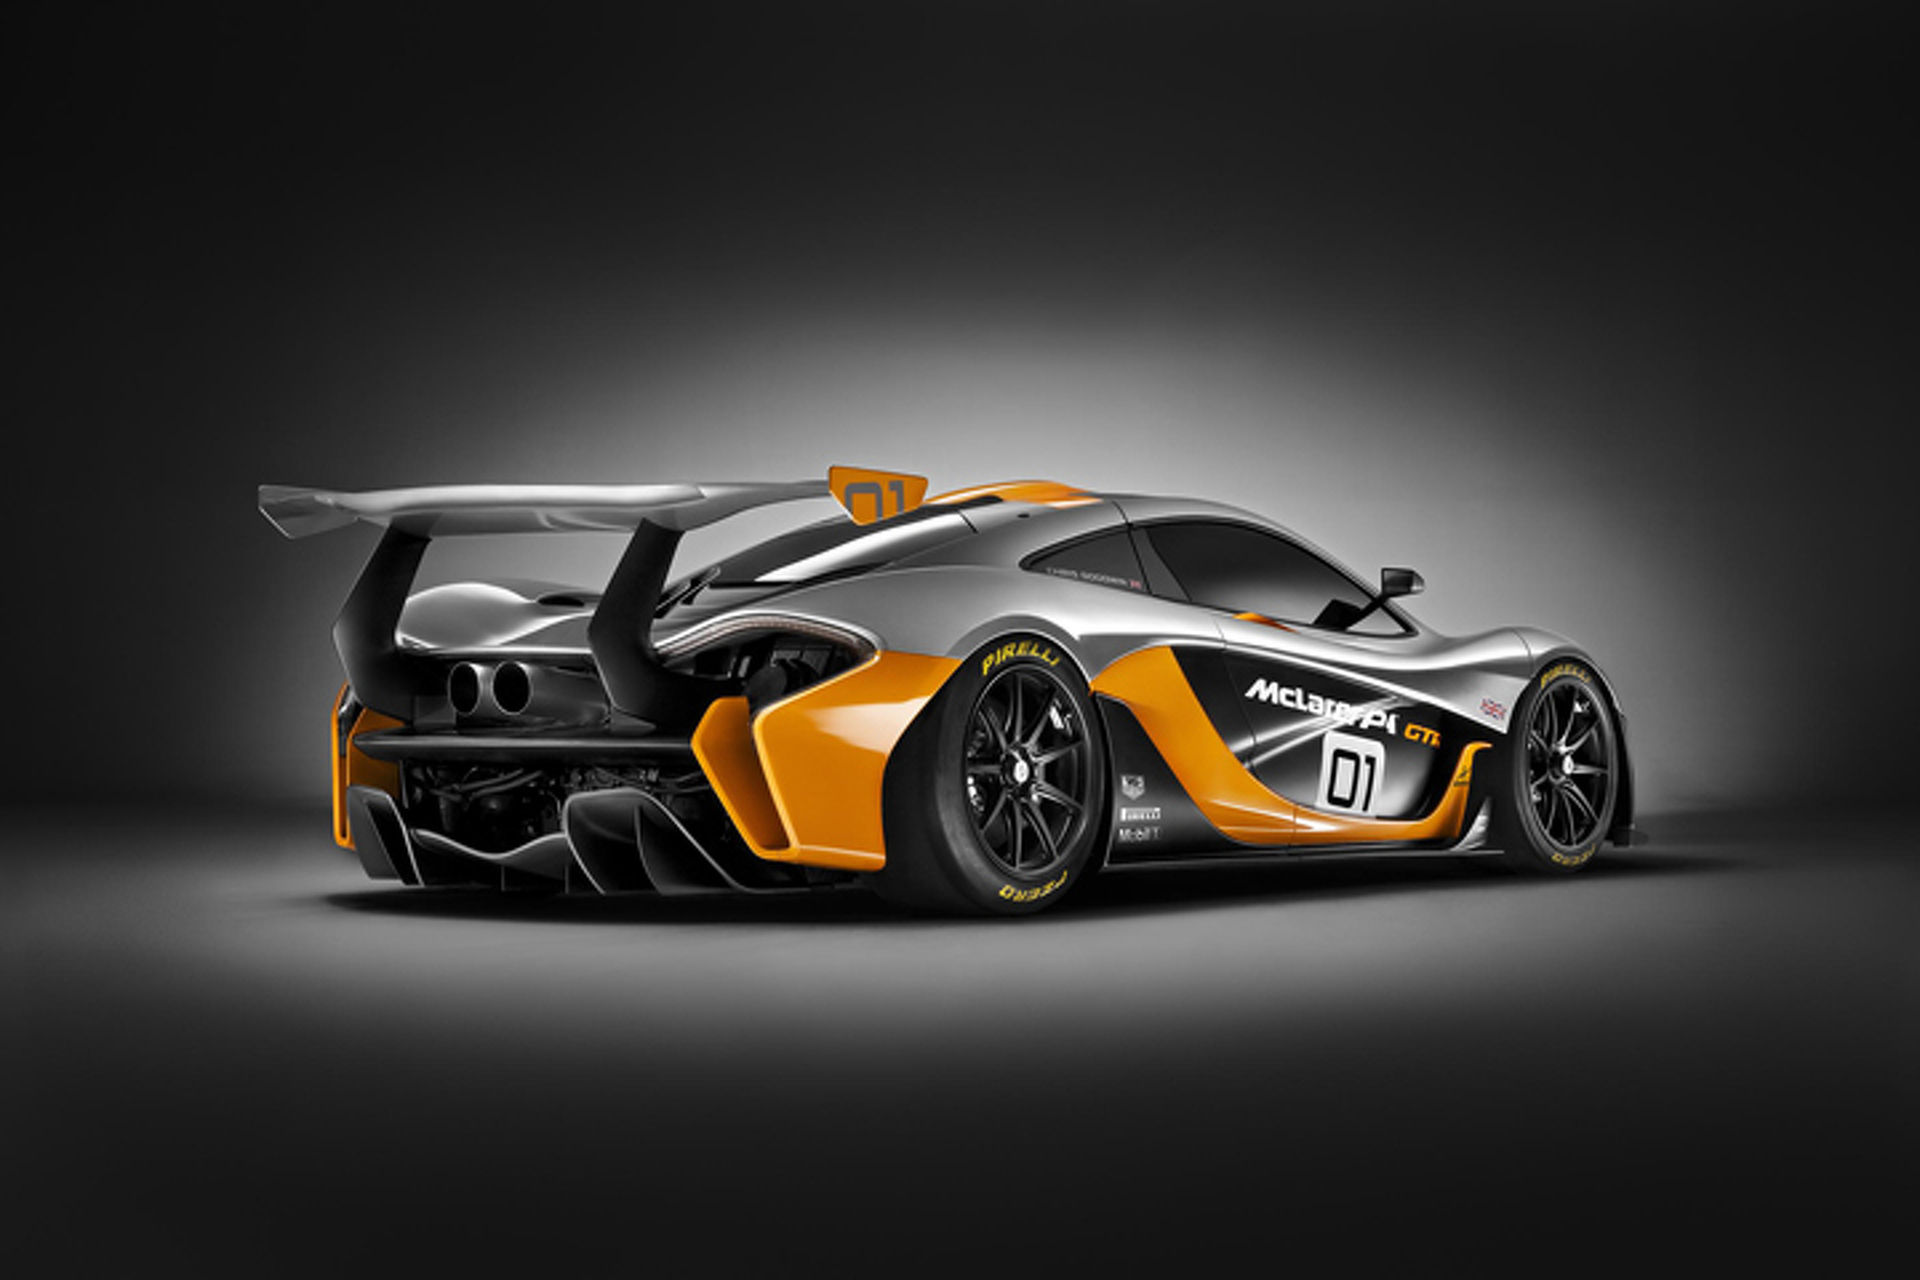 The McLaren P1 GTR is a 986HP Track Missile: Pebble Beach